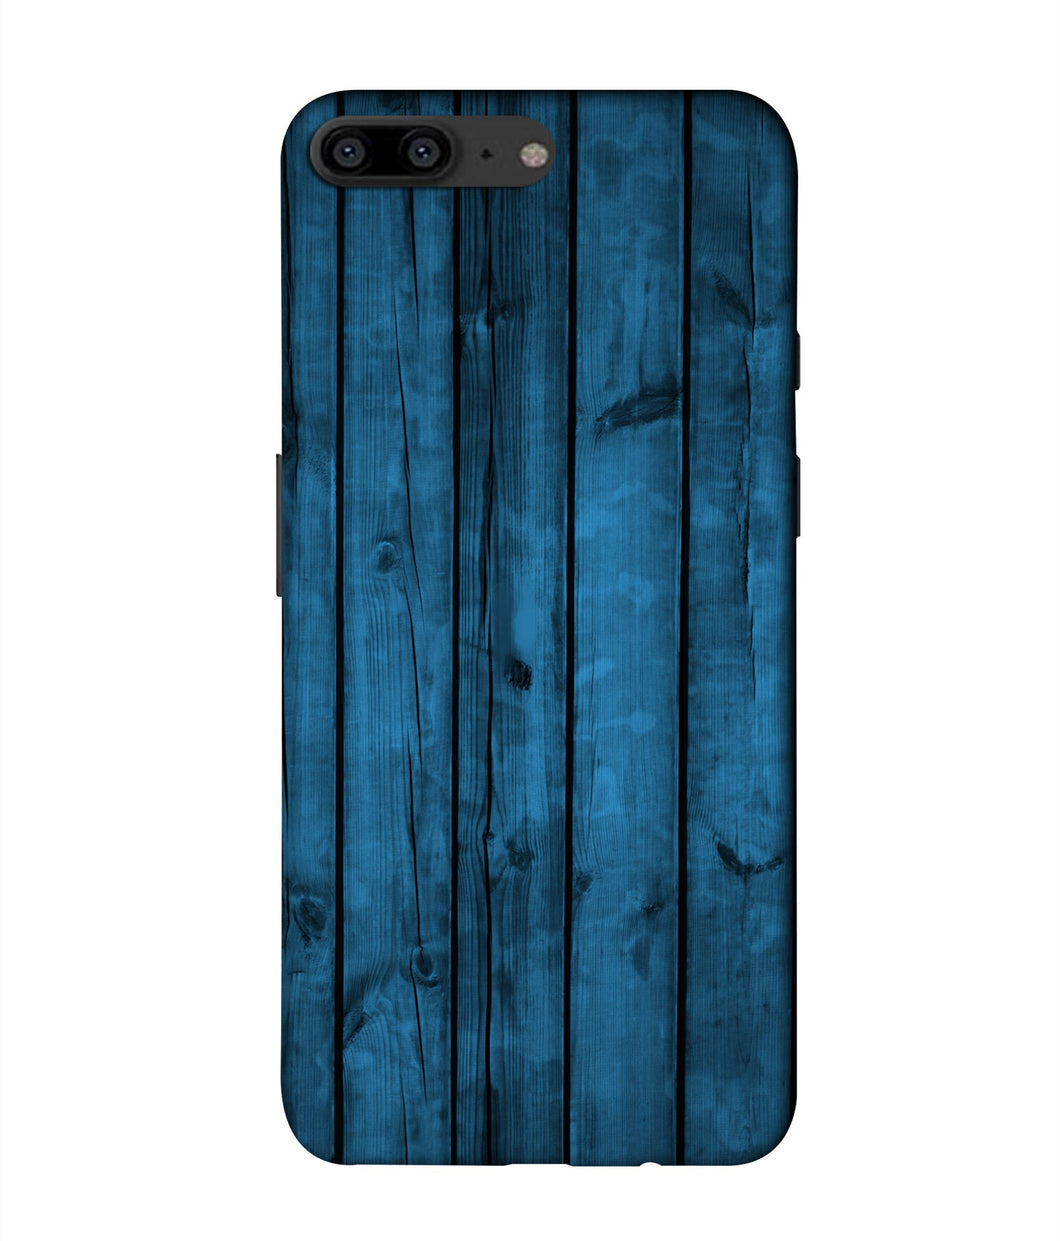 One plus 5 Blue Woods Mobile cover